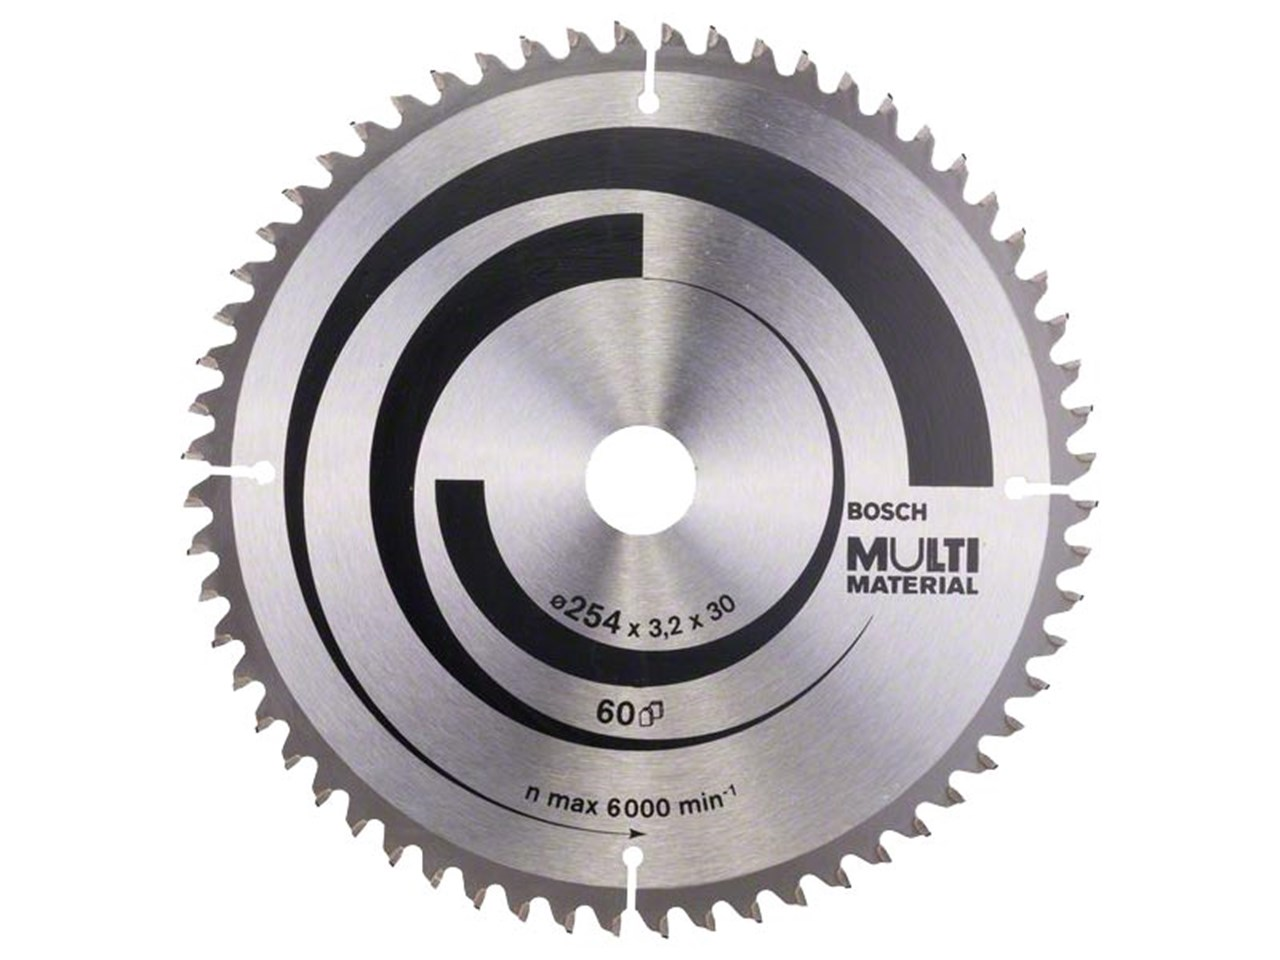 Bosch 2608640449 254mm x 30mm x 60t multi material circular saw blade greentooth Image collections